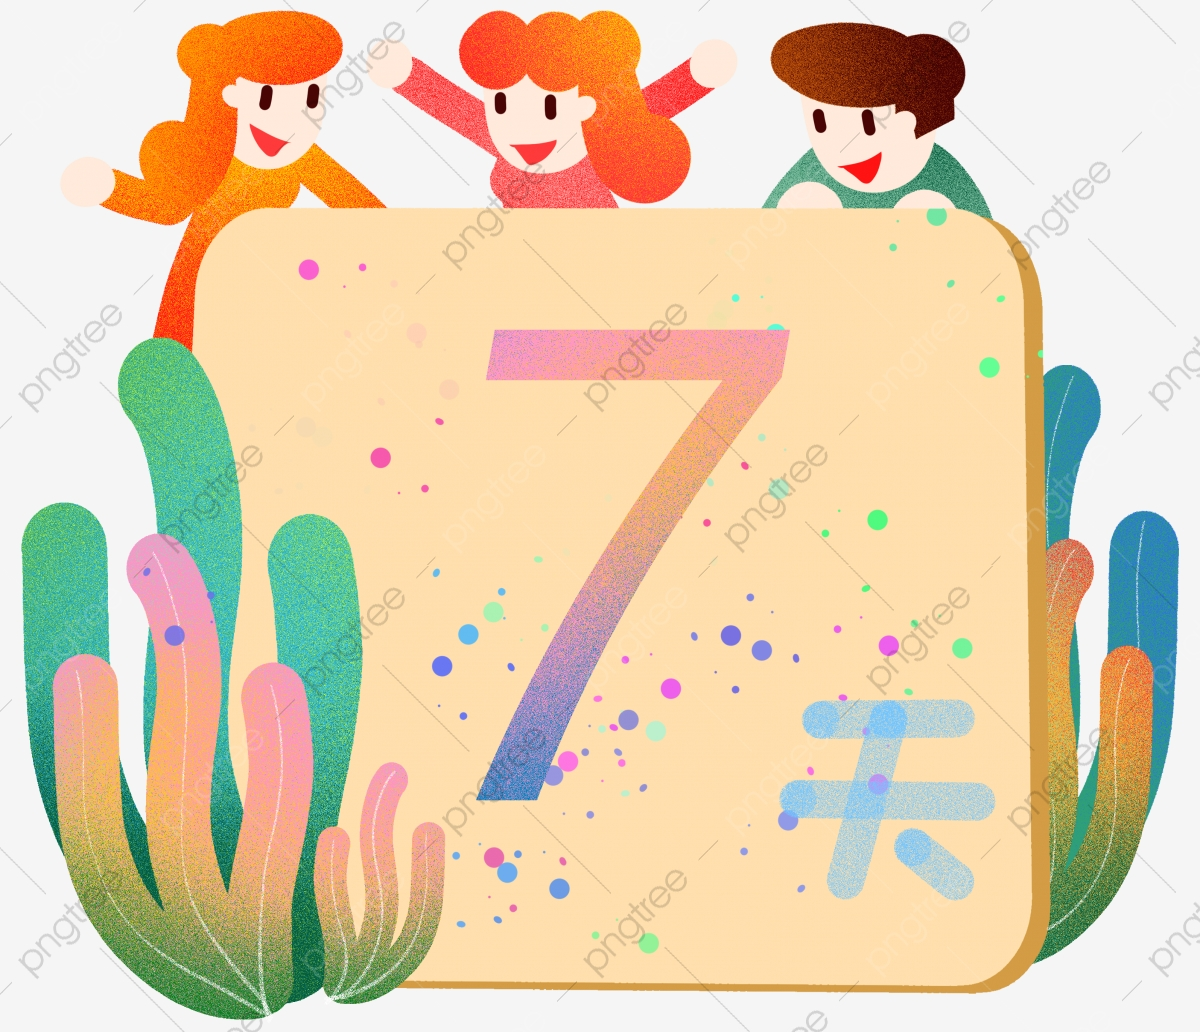 Reciprocal clipart jpg royalty free download Reciprocal Welcome The New Year Countdown 7 Number Seven ... jpg royalty free download